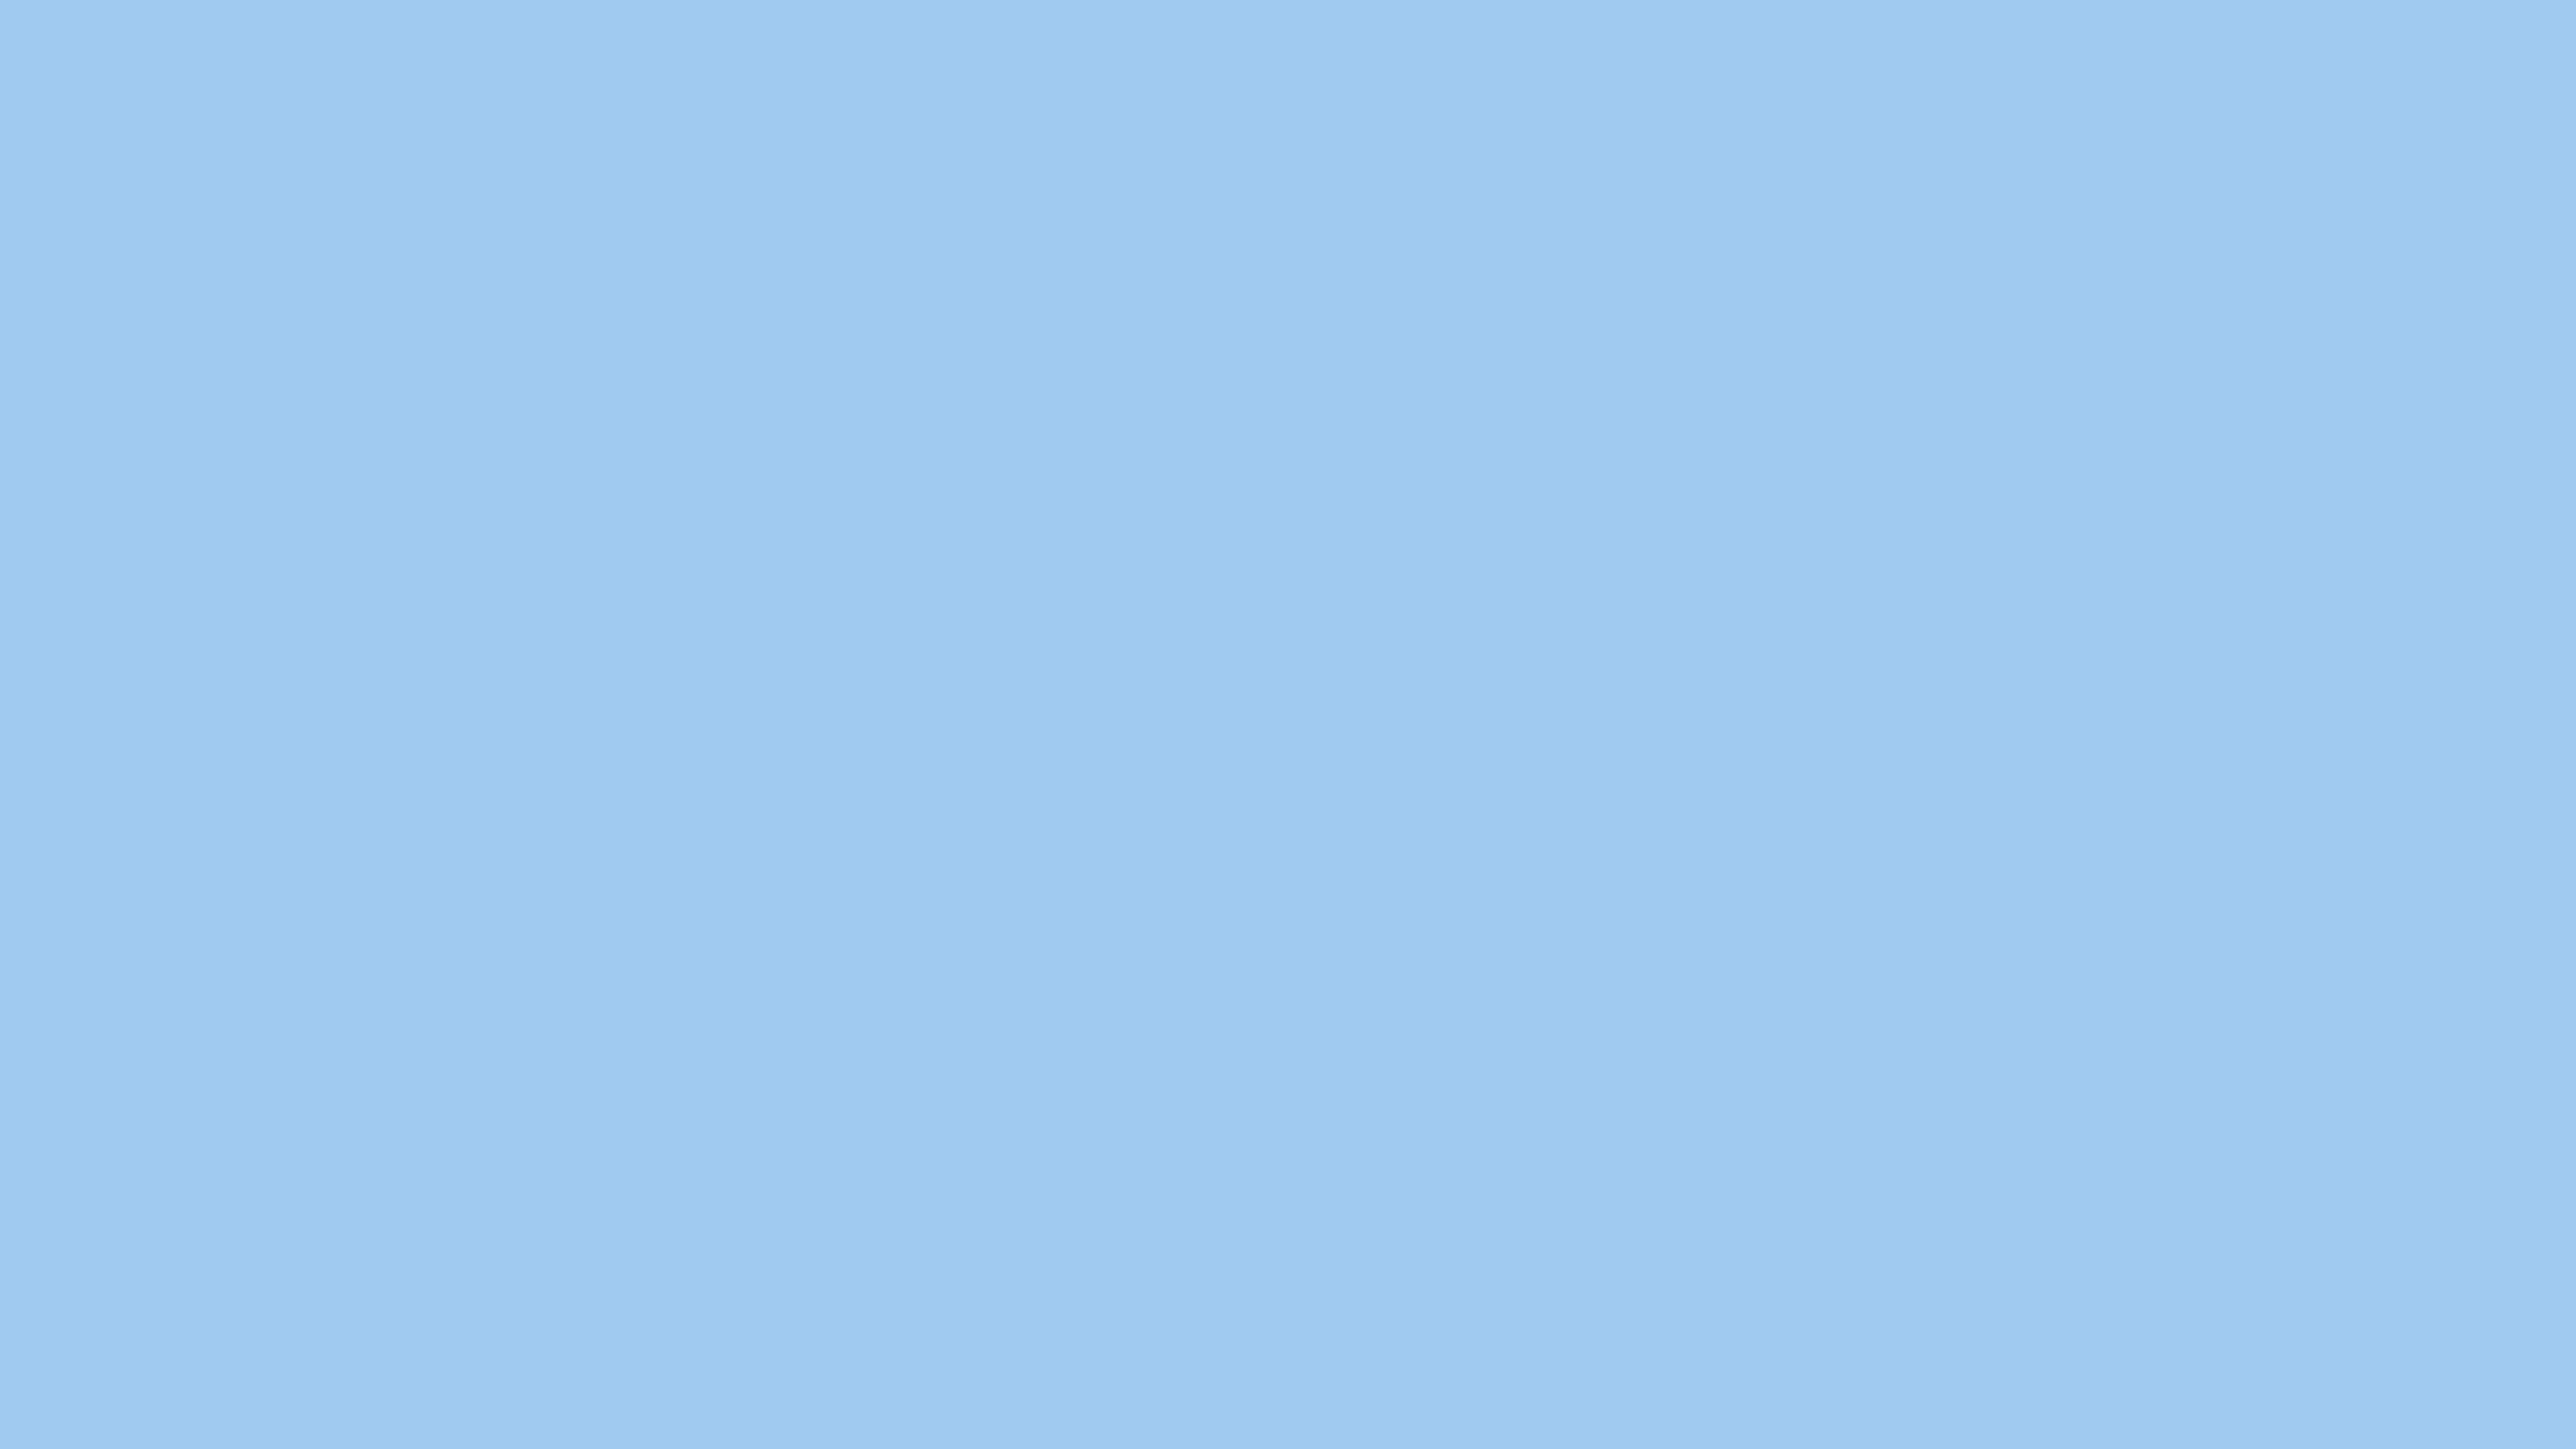 3840x2160 Baby Blue Eyes Solid Color Background